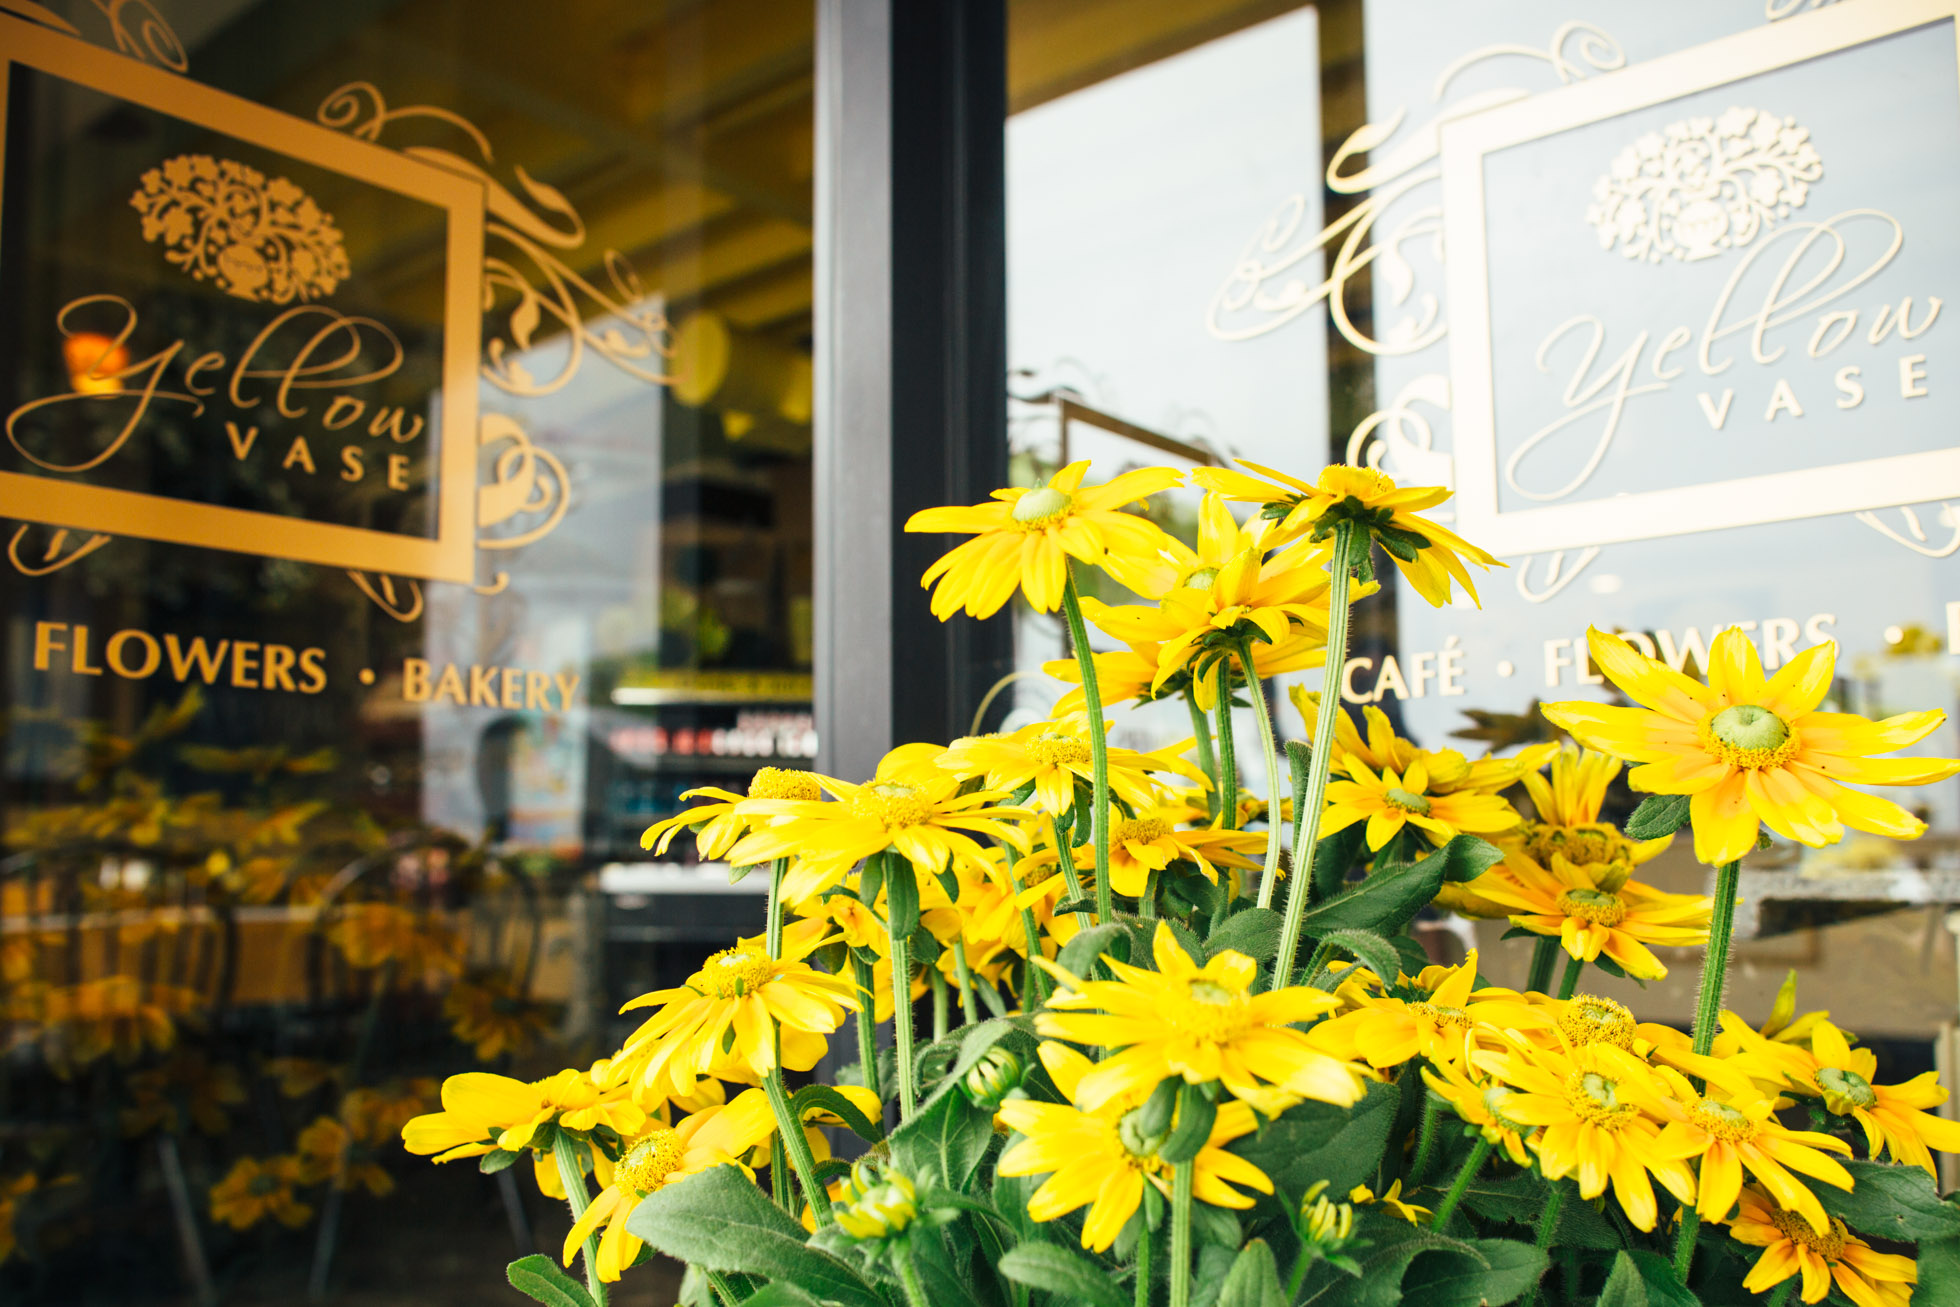 Yellow Vase, one of my favorite cafés here in the area. Come and have a seat with me.